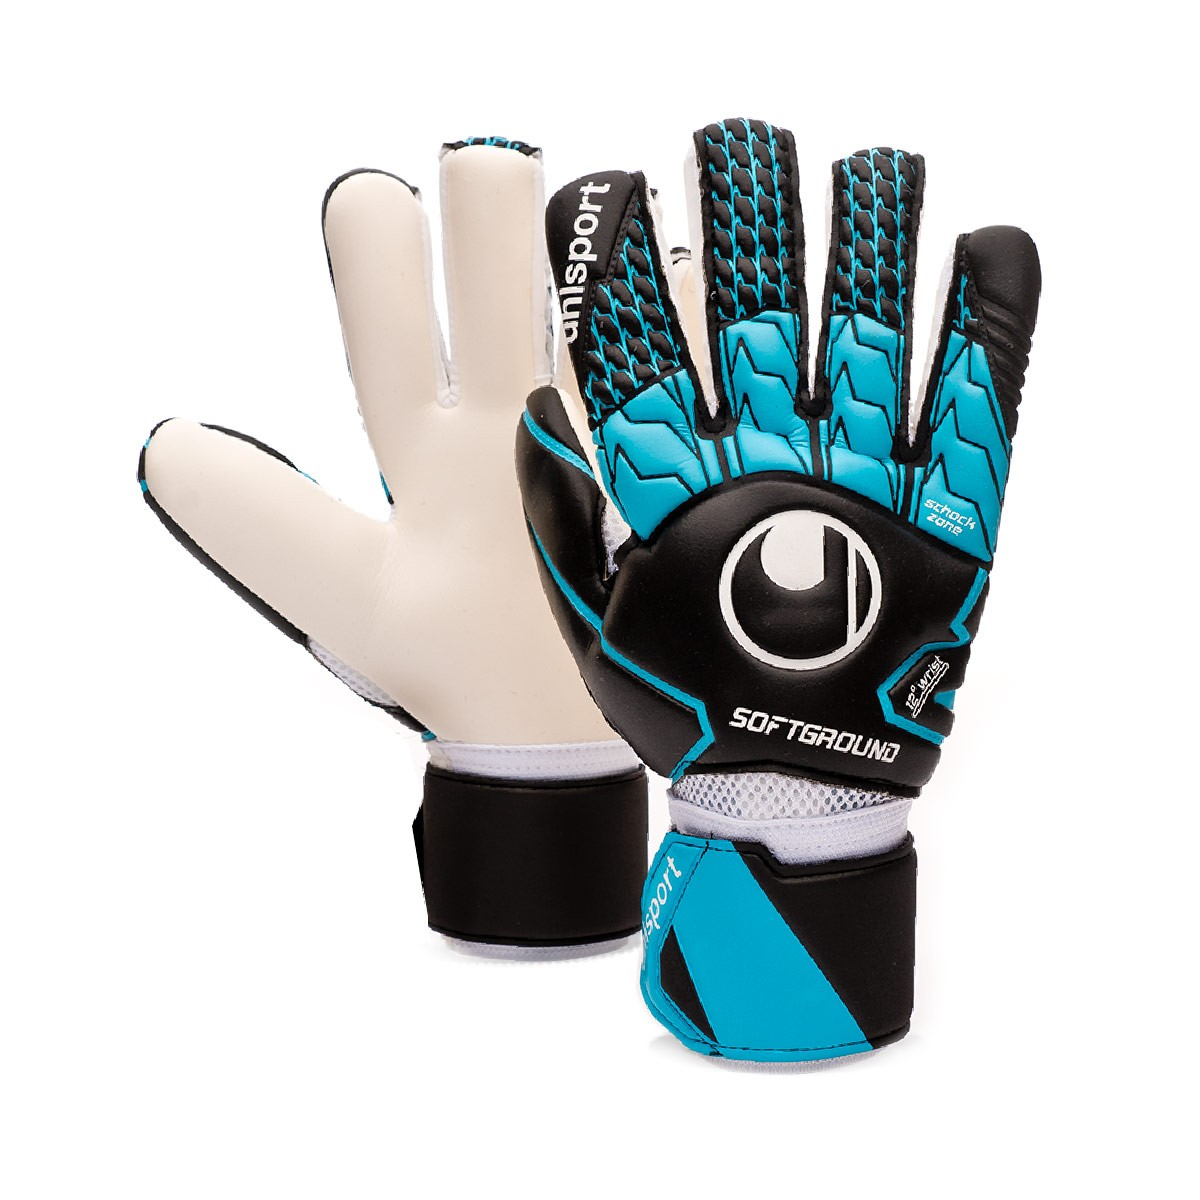 bf0a5810 Glove Uhlsport Soft HN Competition Black-Sky blue-White - Football store  Fútbol Emotion